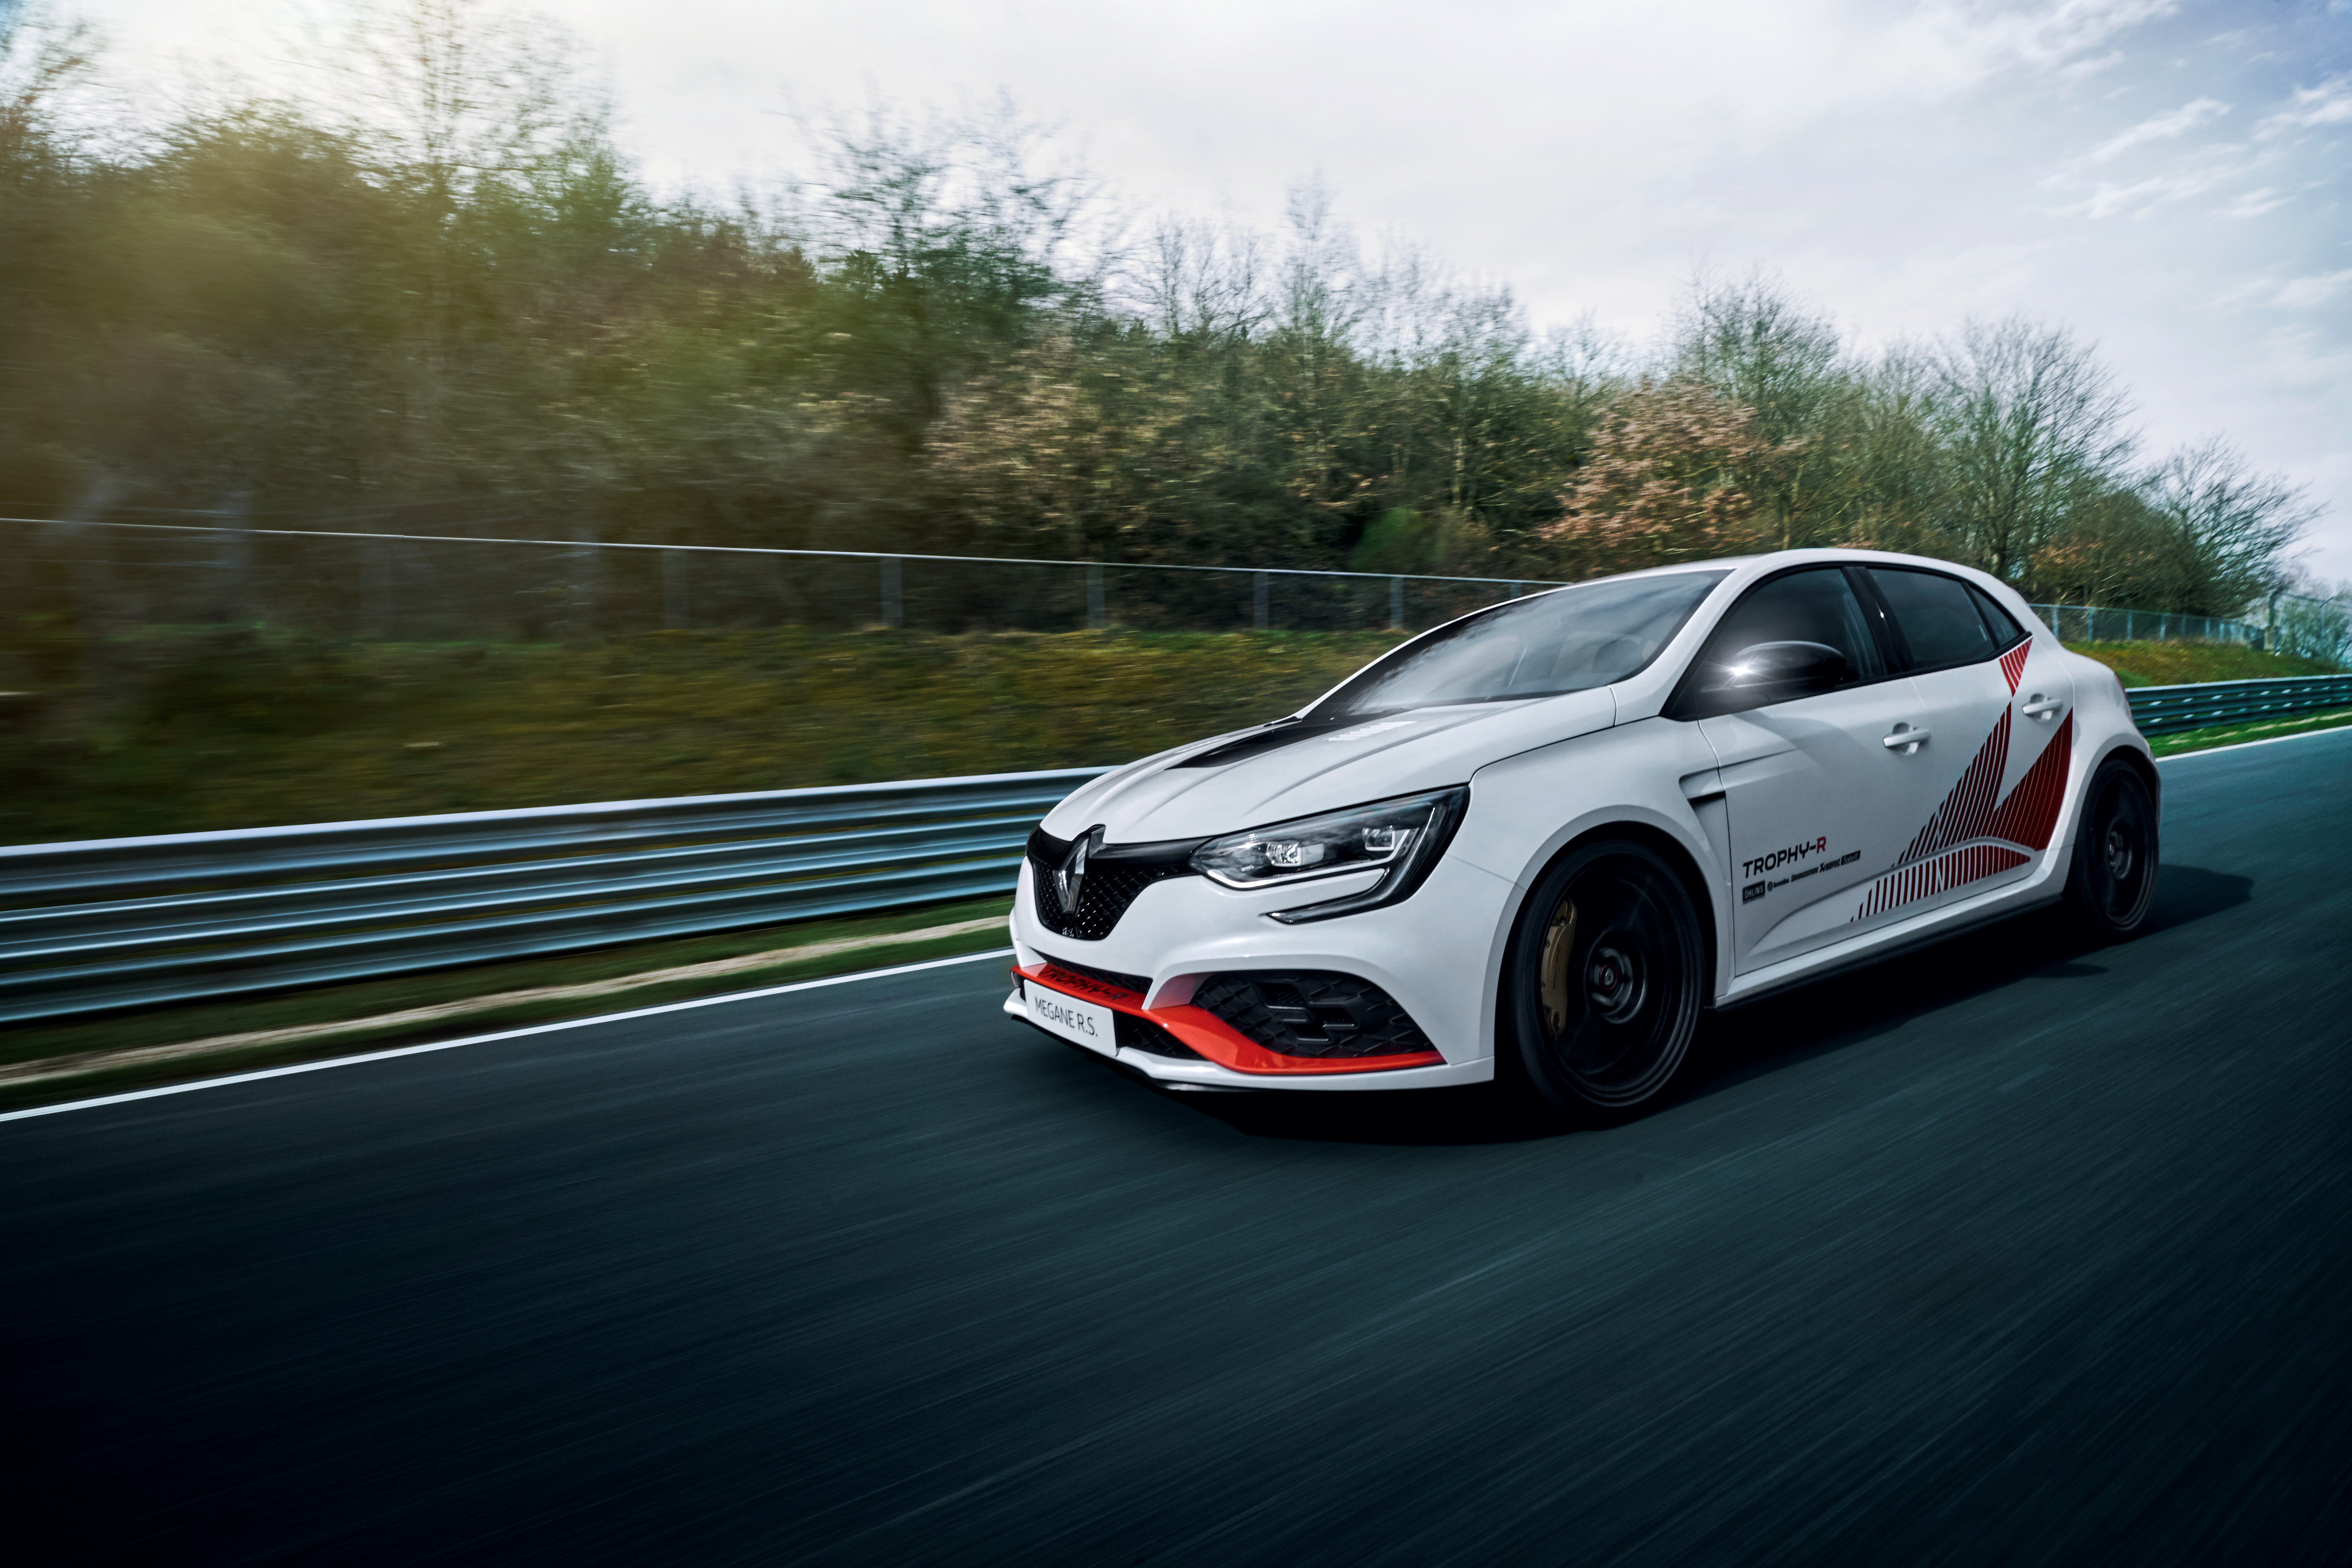 Front Wheel Drive Cars >> The 6 Fastest Front Wheel Drive Cars Around The Nurburgring